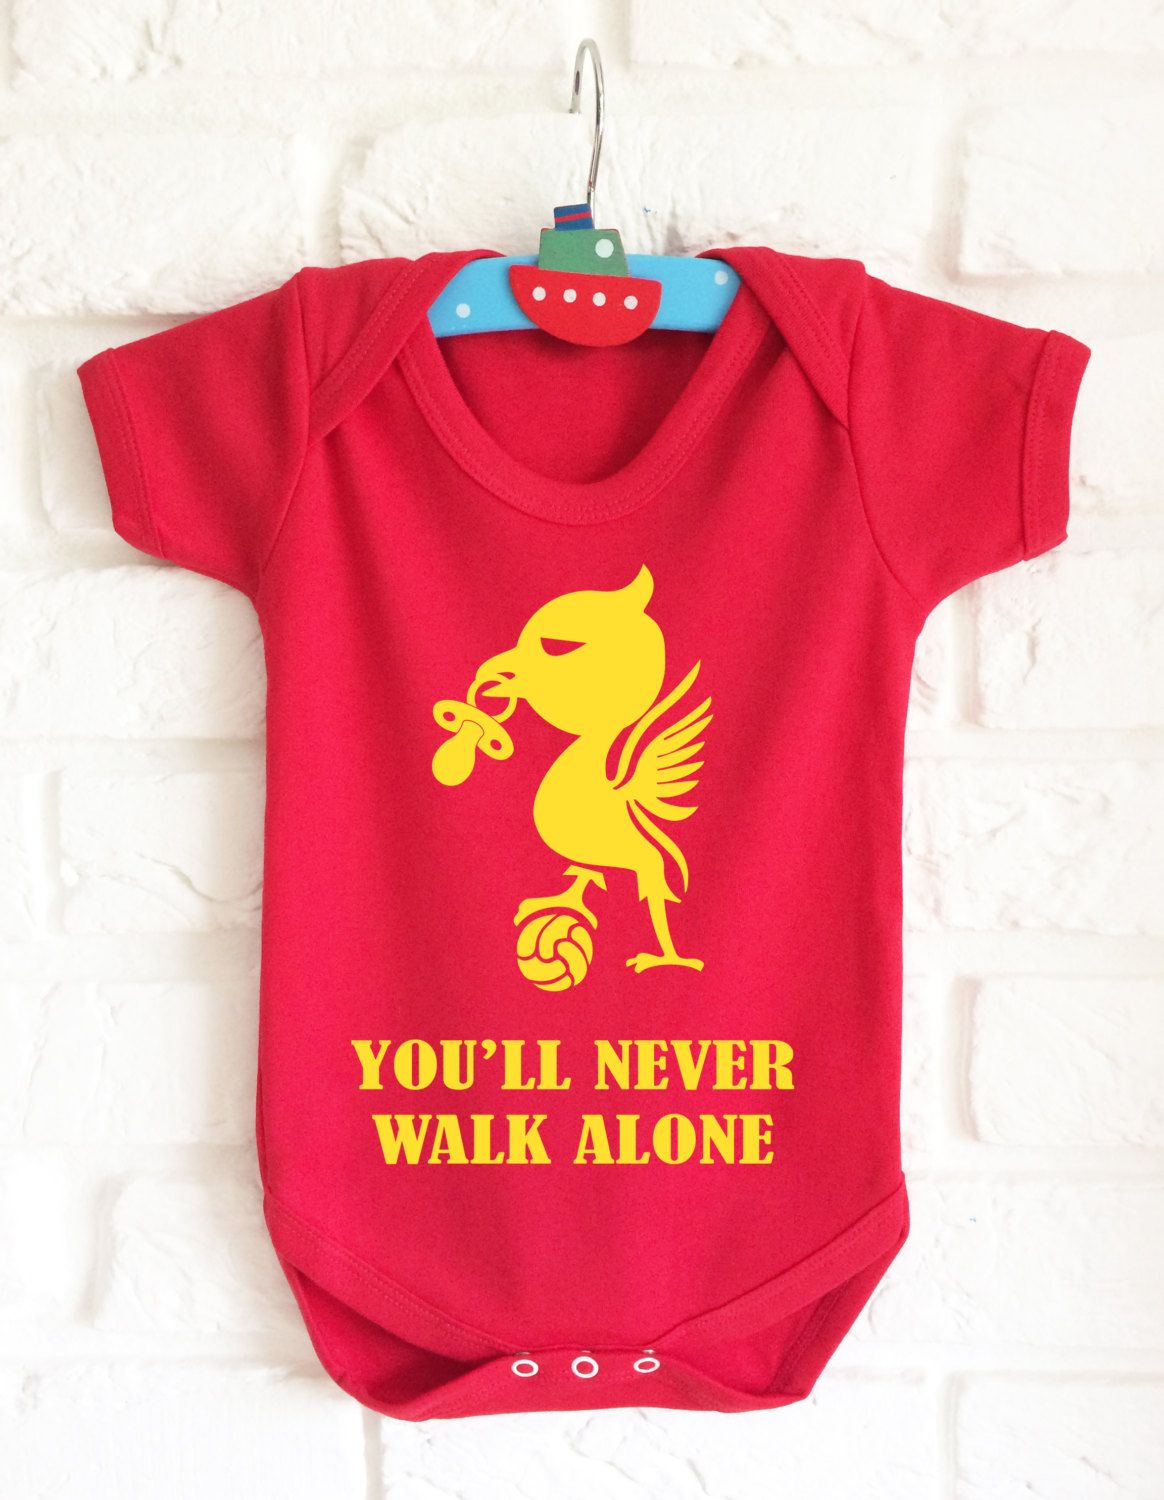 d789d4f99 Baby s Liverpool bodysuit baby grow vest. You ll never walk alone ...